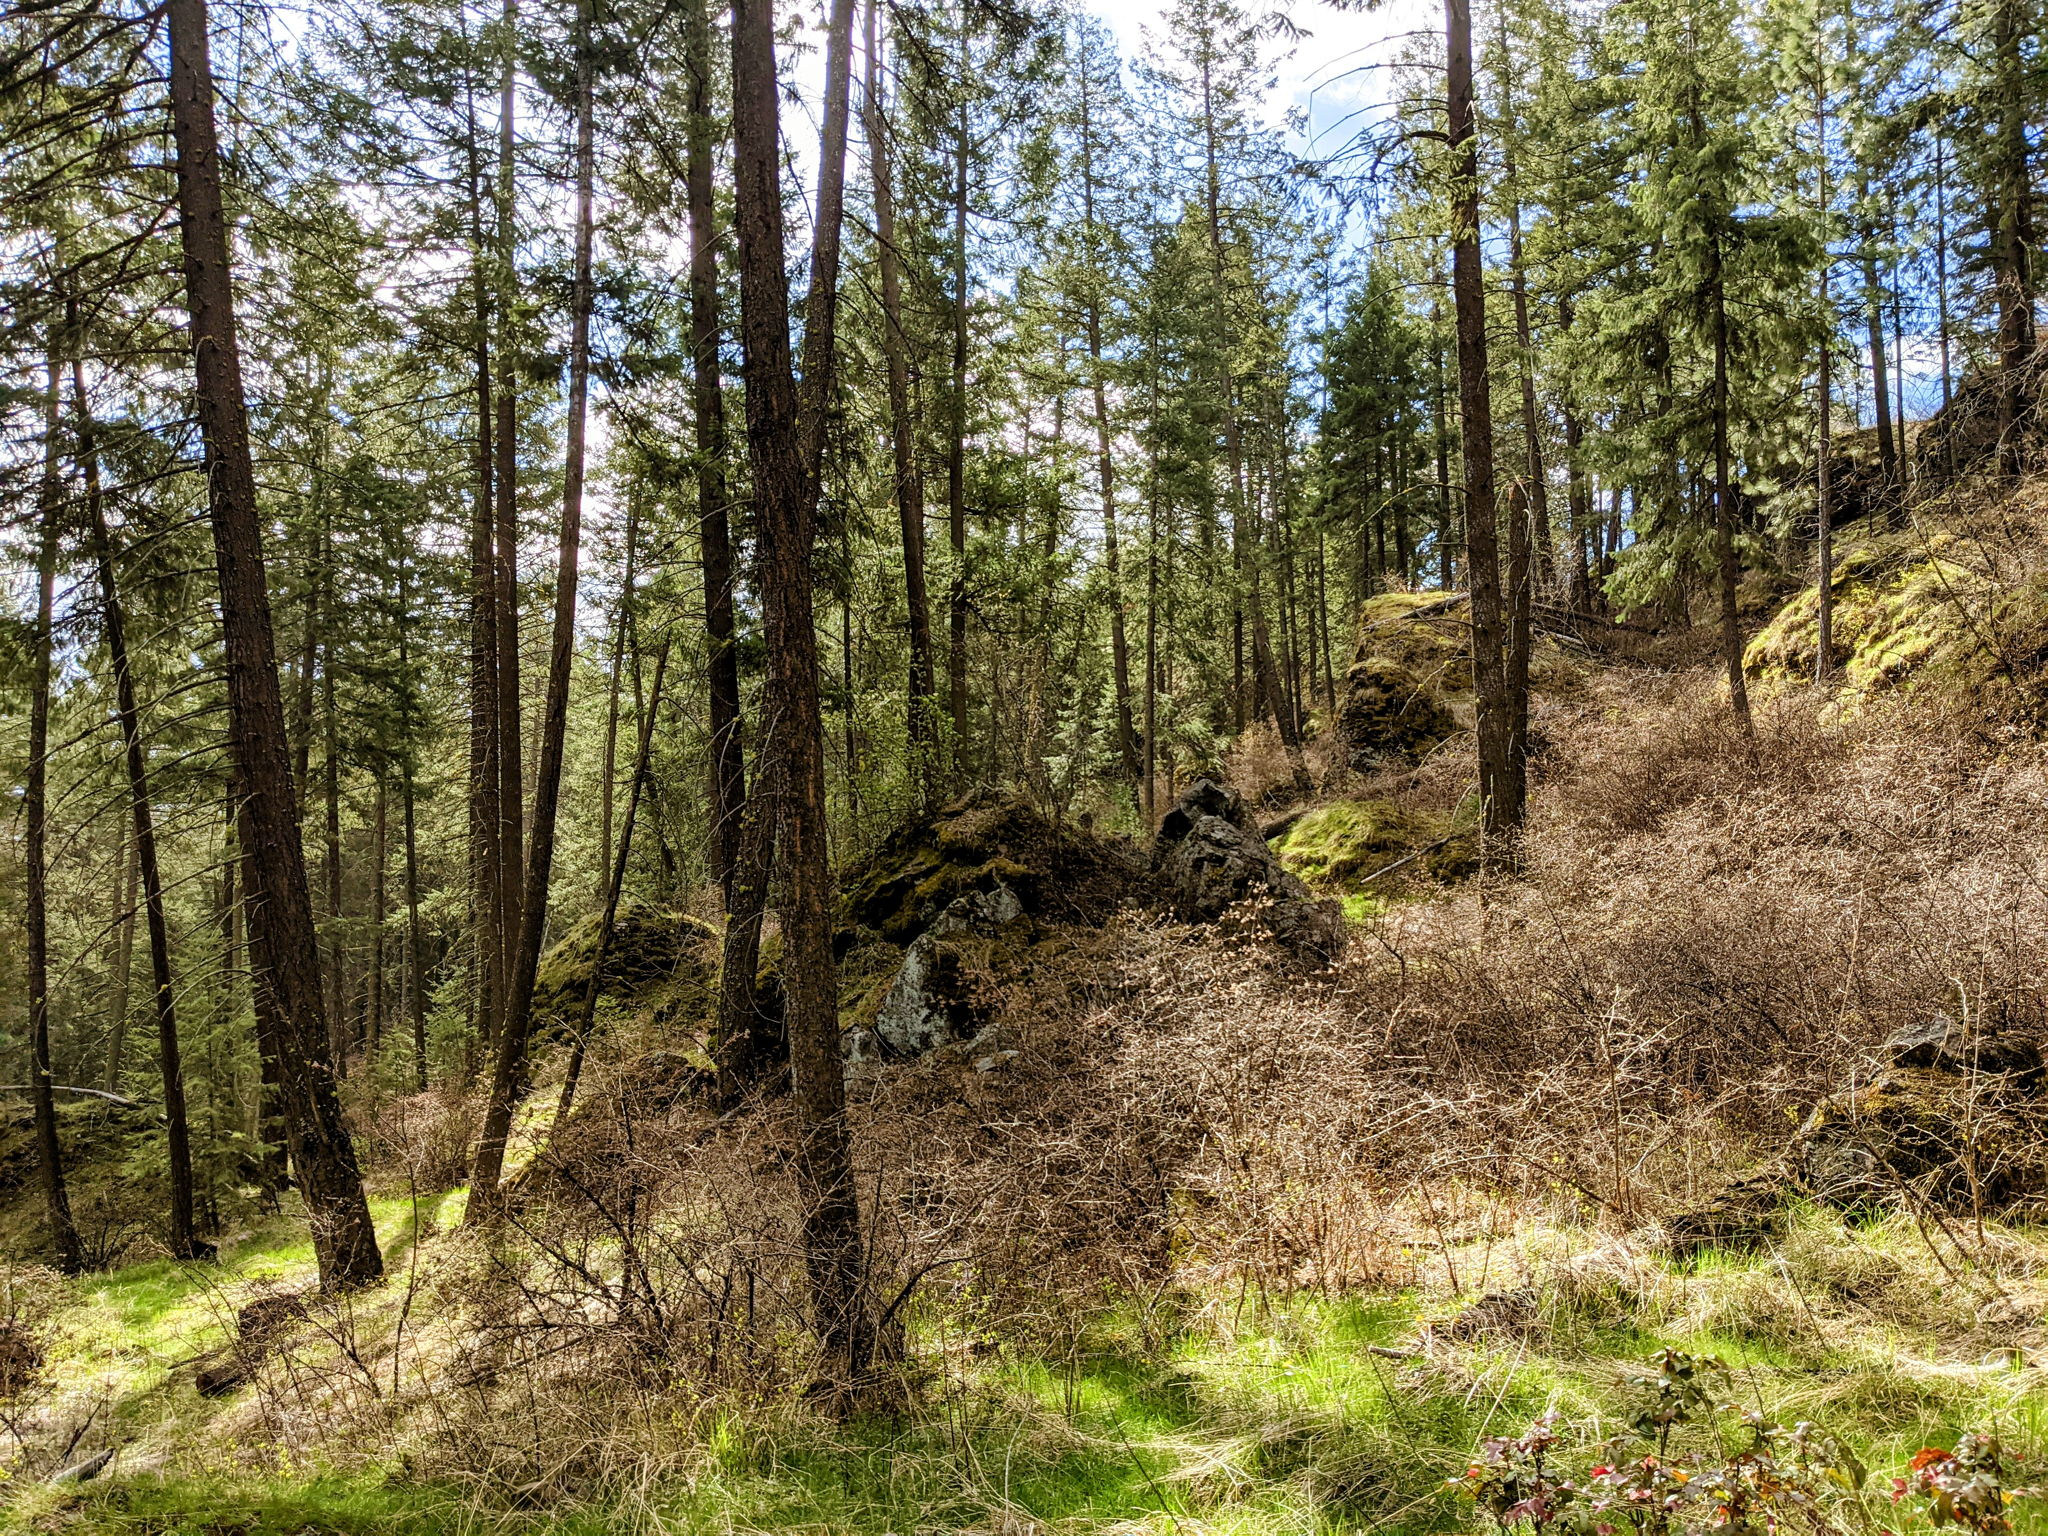 Native Plants, Moss, and Ferns